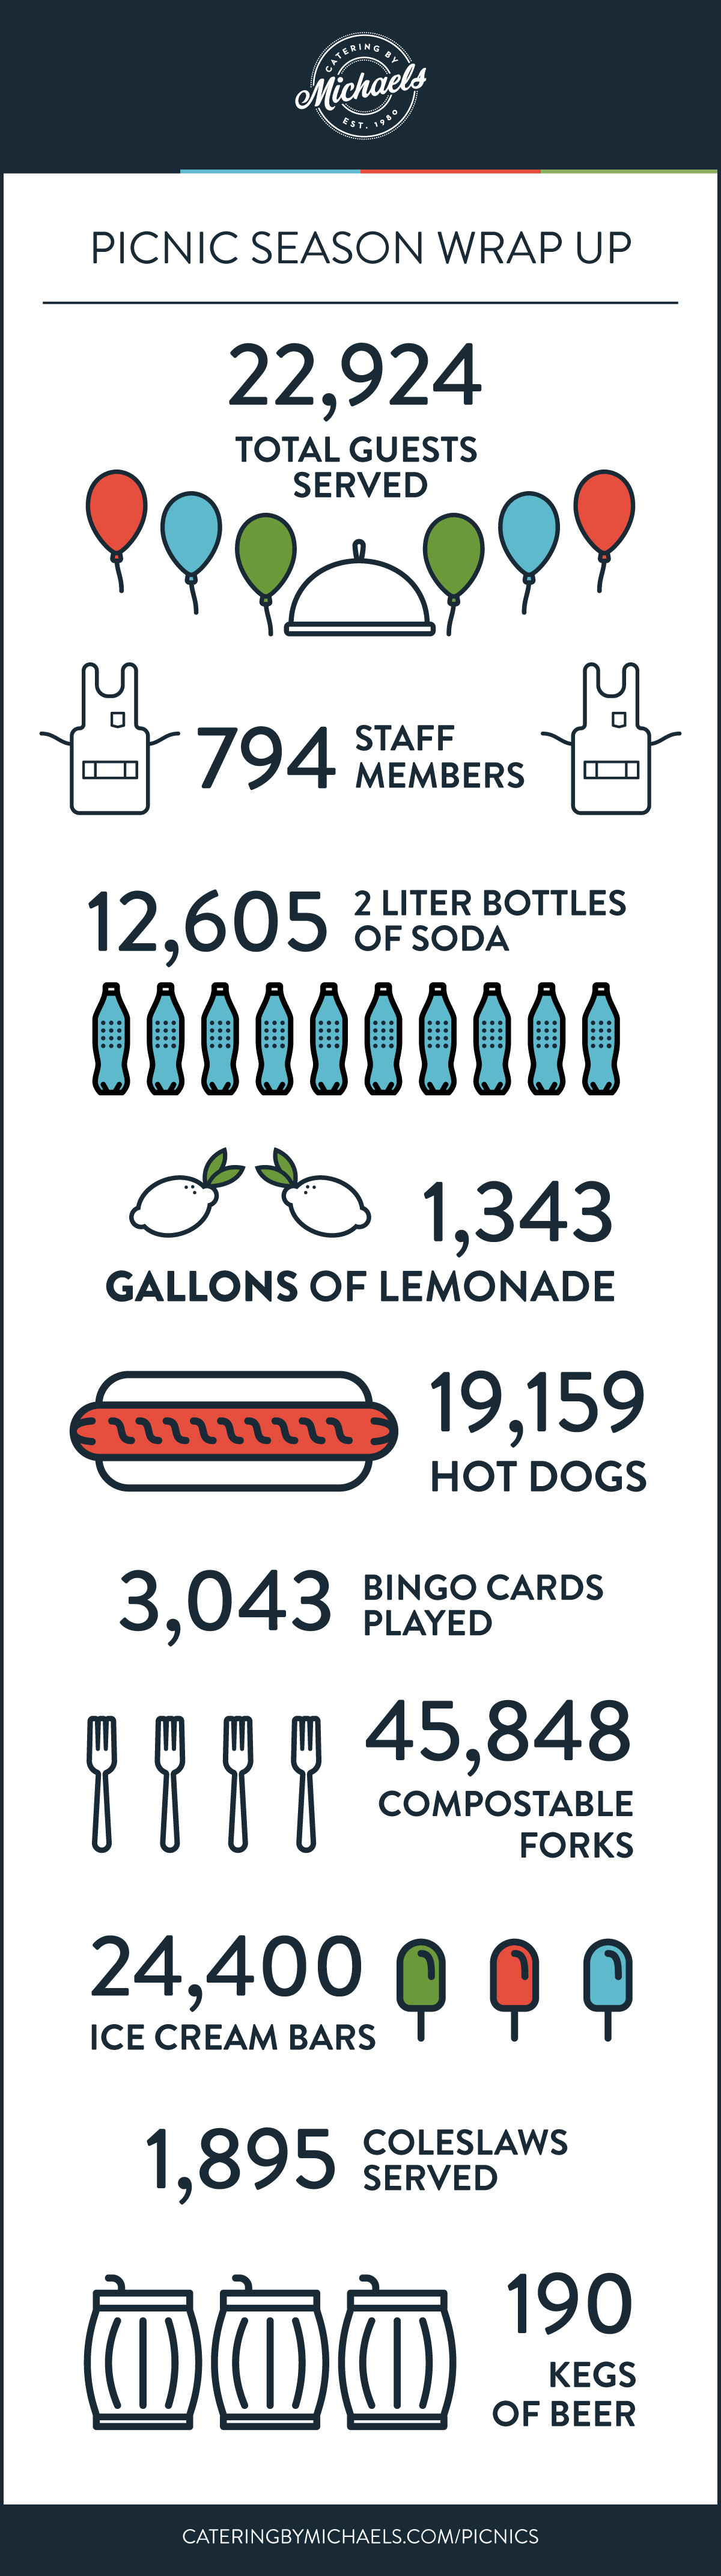 2017 Picnic Season Wrap-Up Infographic